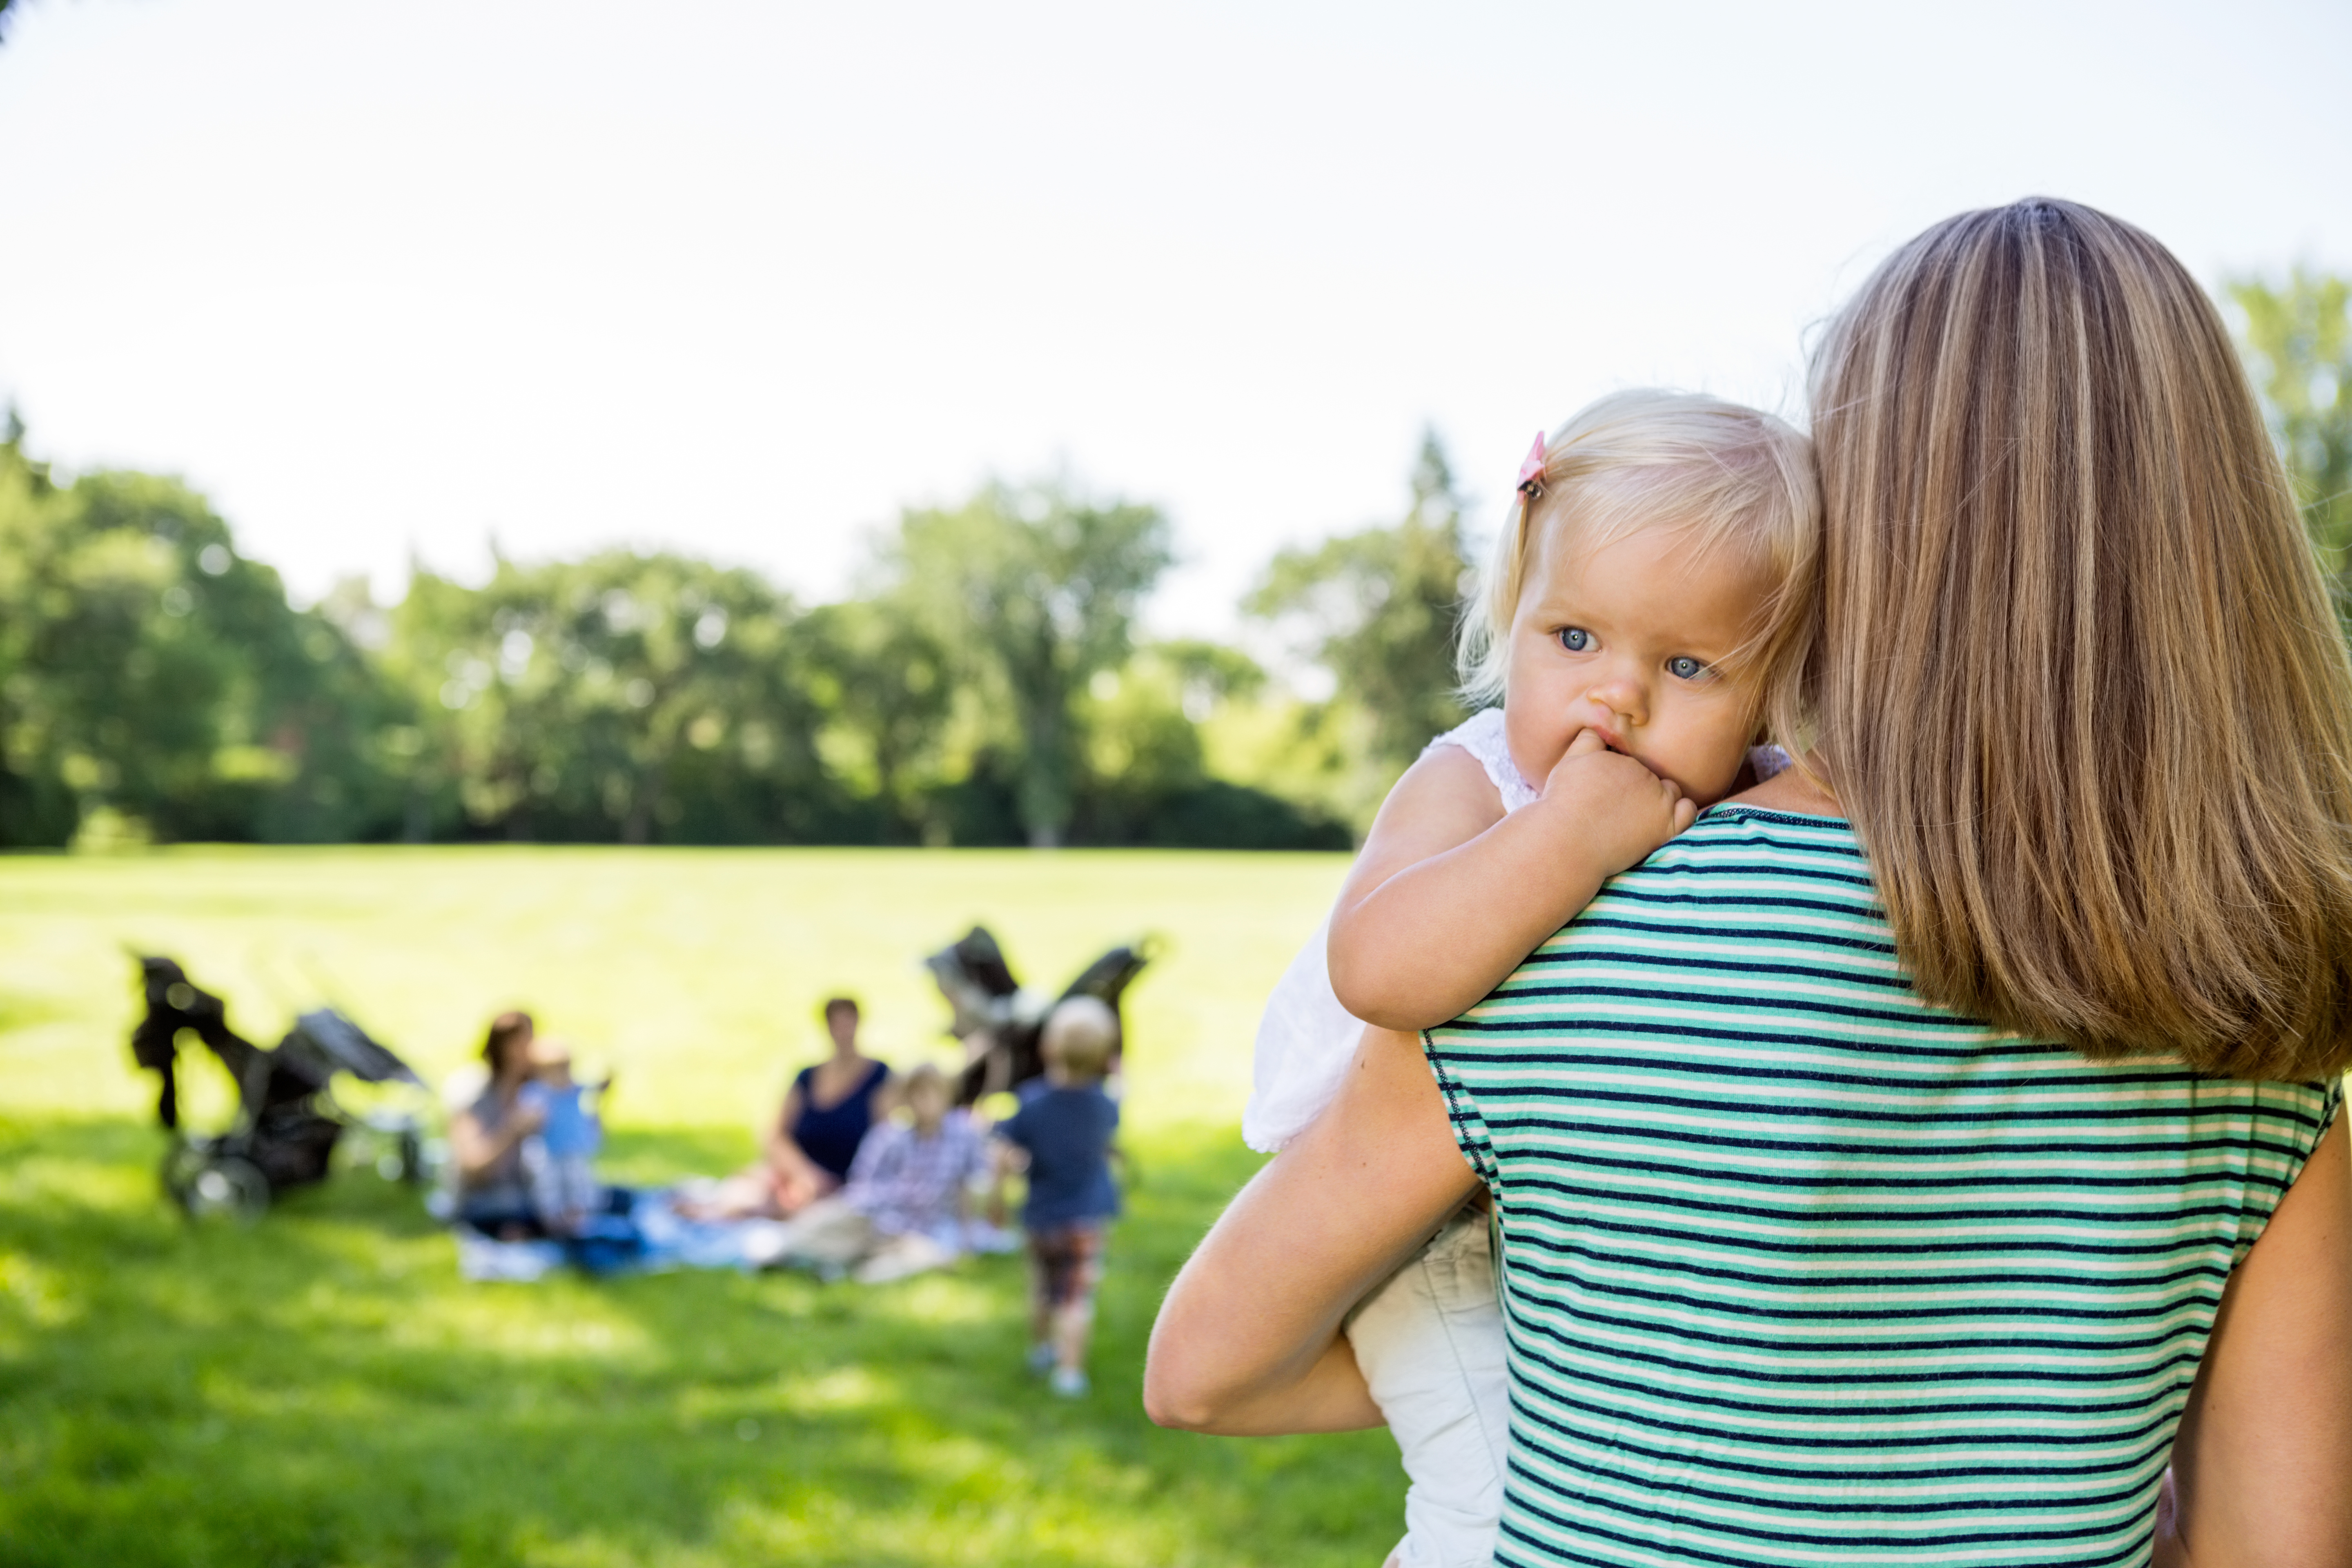 Mother Carrying Daughter Looking Away In Park